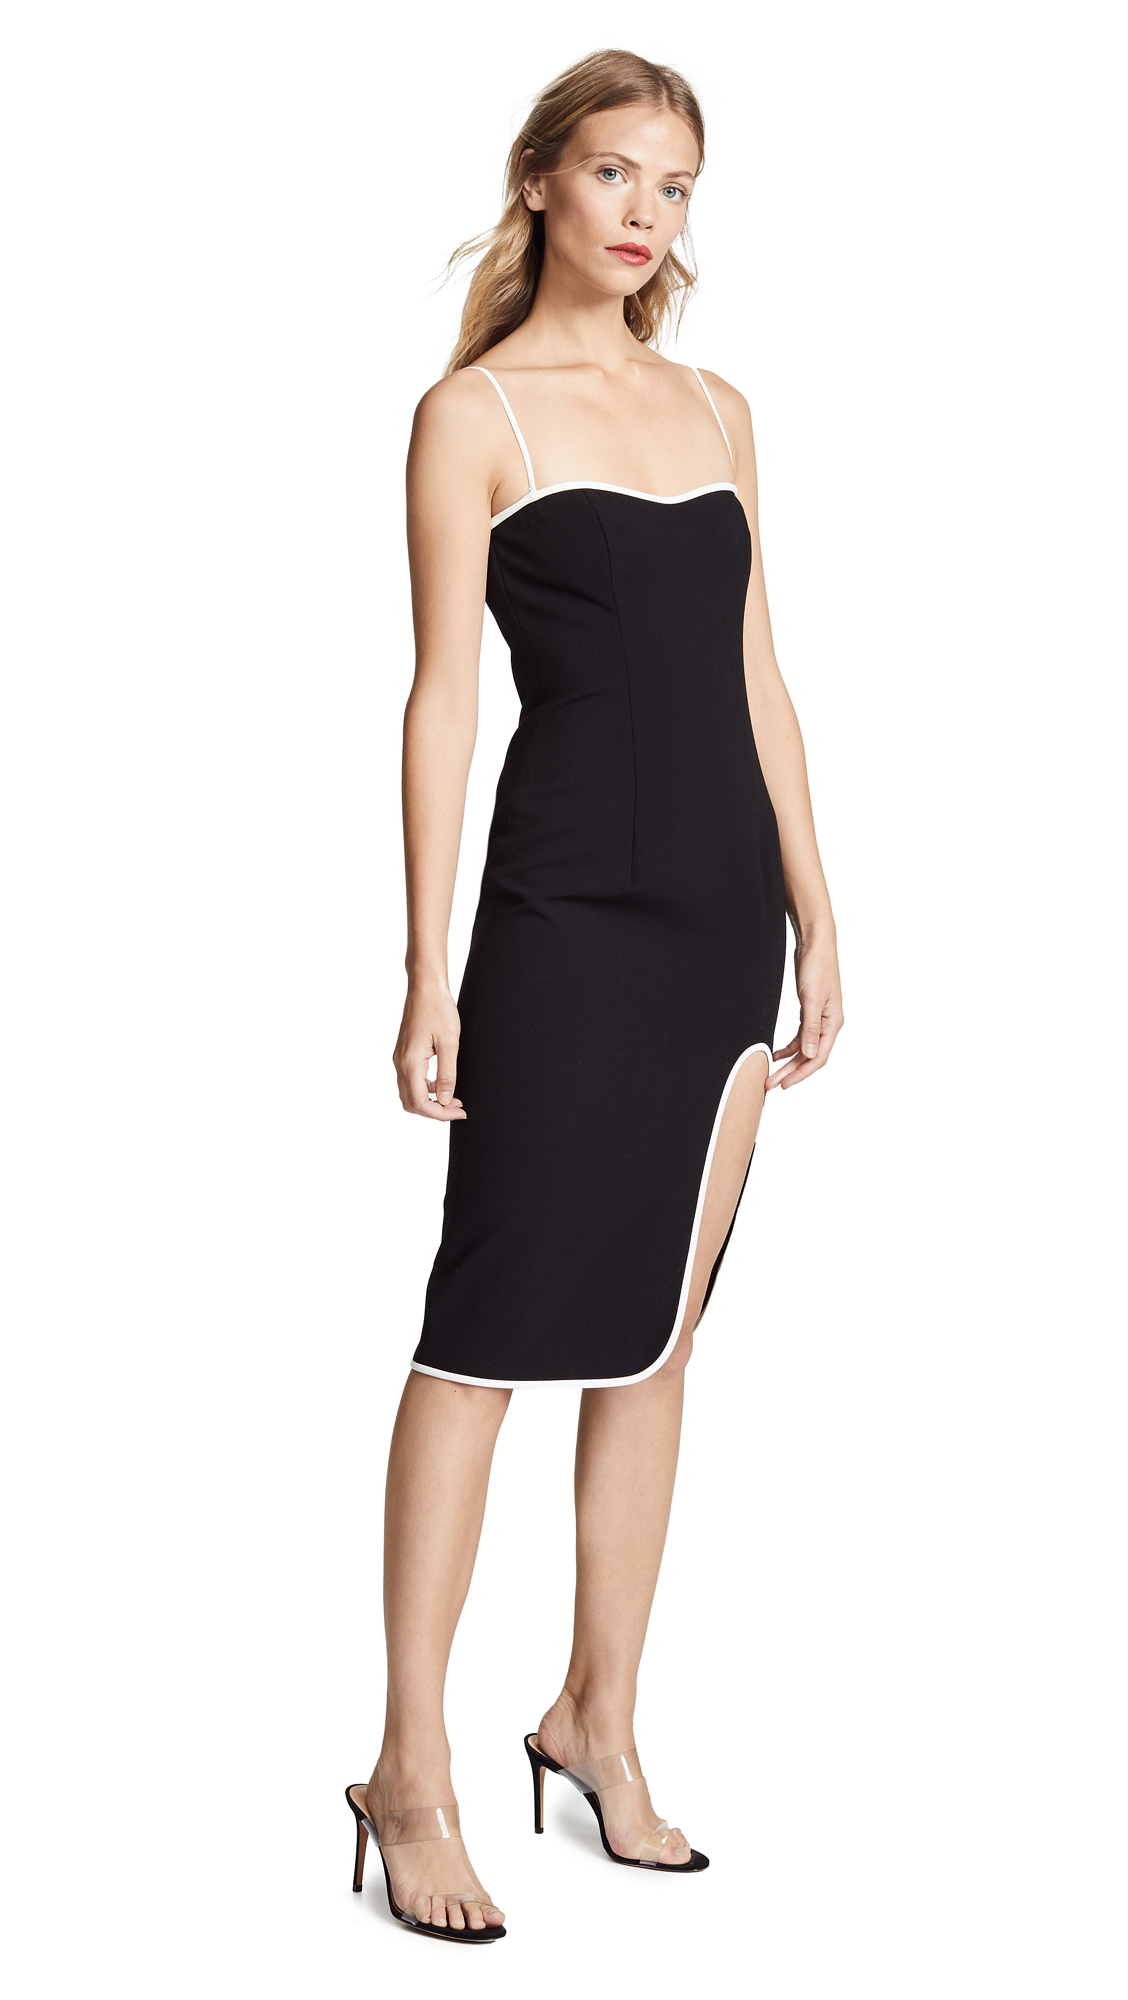 Black Halo Dalai Sheath Dress - Black/Porcelain